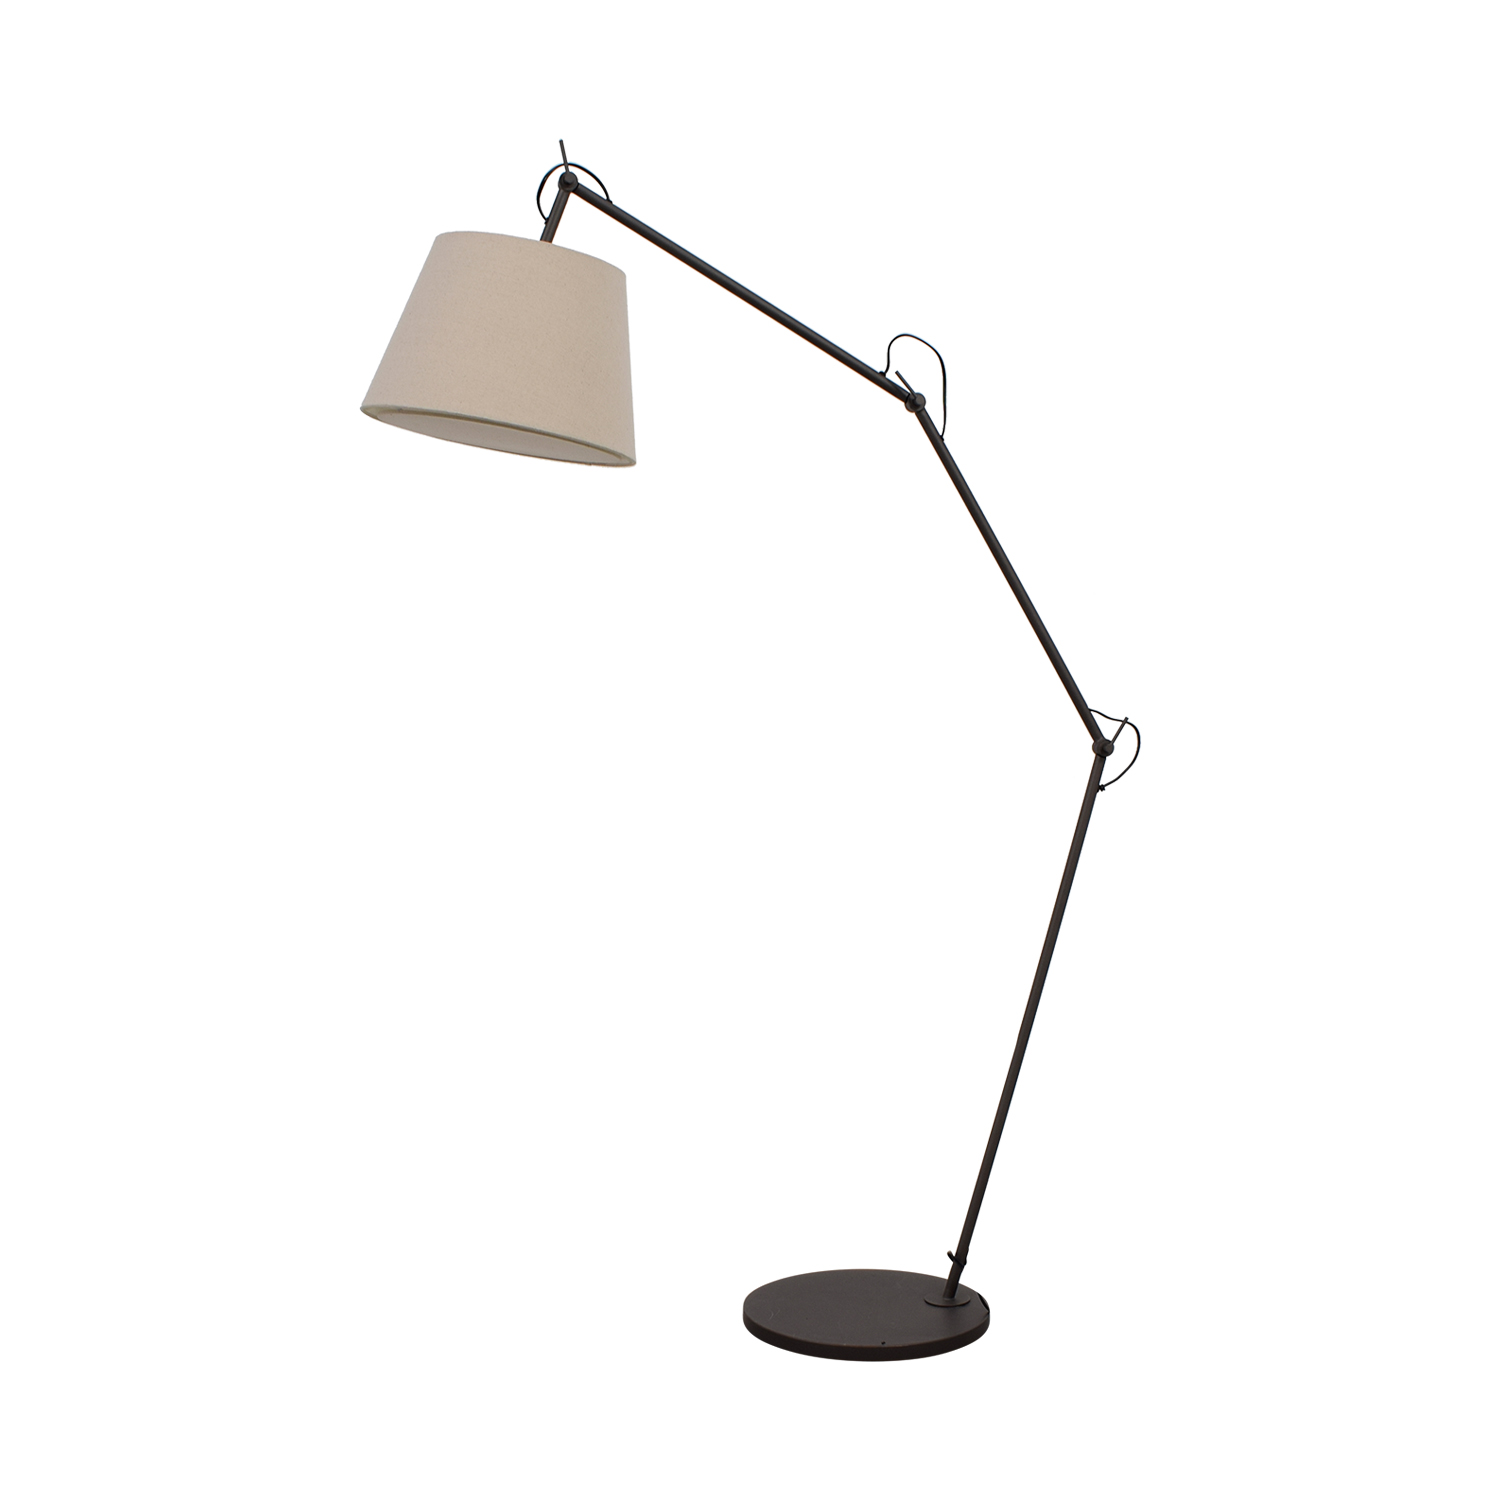 CB2 CB2 Joint Floor Lamp second hand